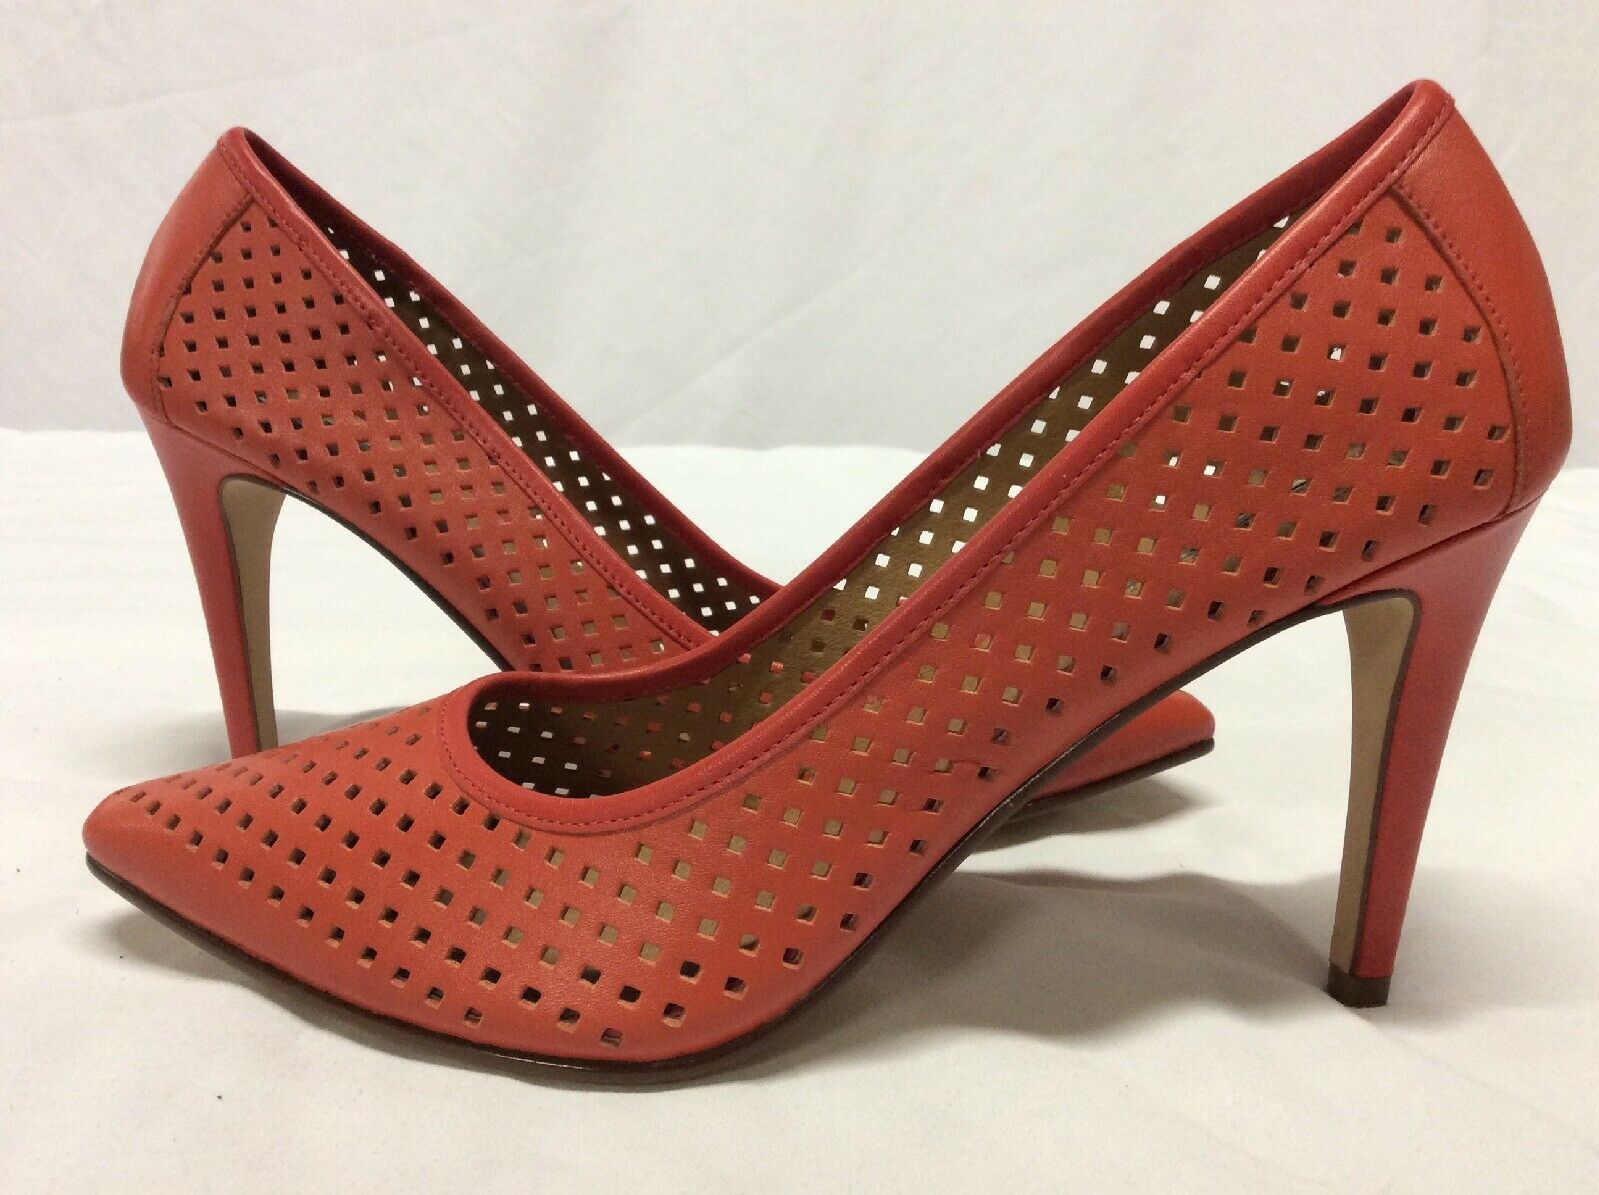 Halogen Mandie Women's Pumps shoes, Red Leather, Size 8.5 8.5 8.5 M ..FS1 cebfa4